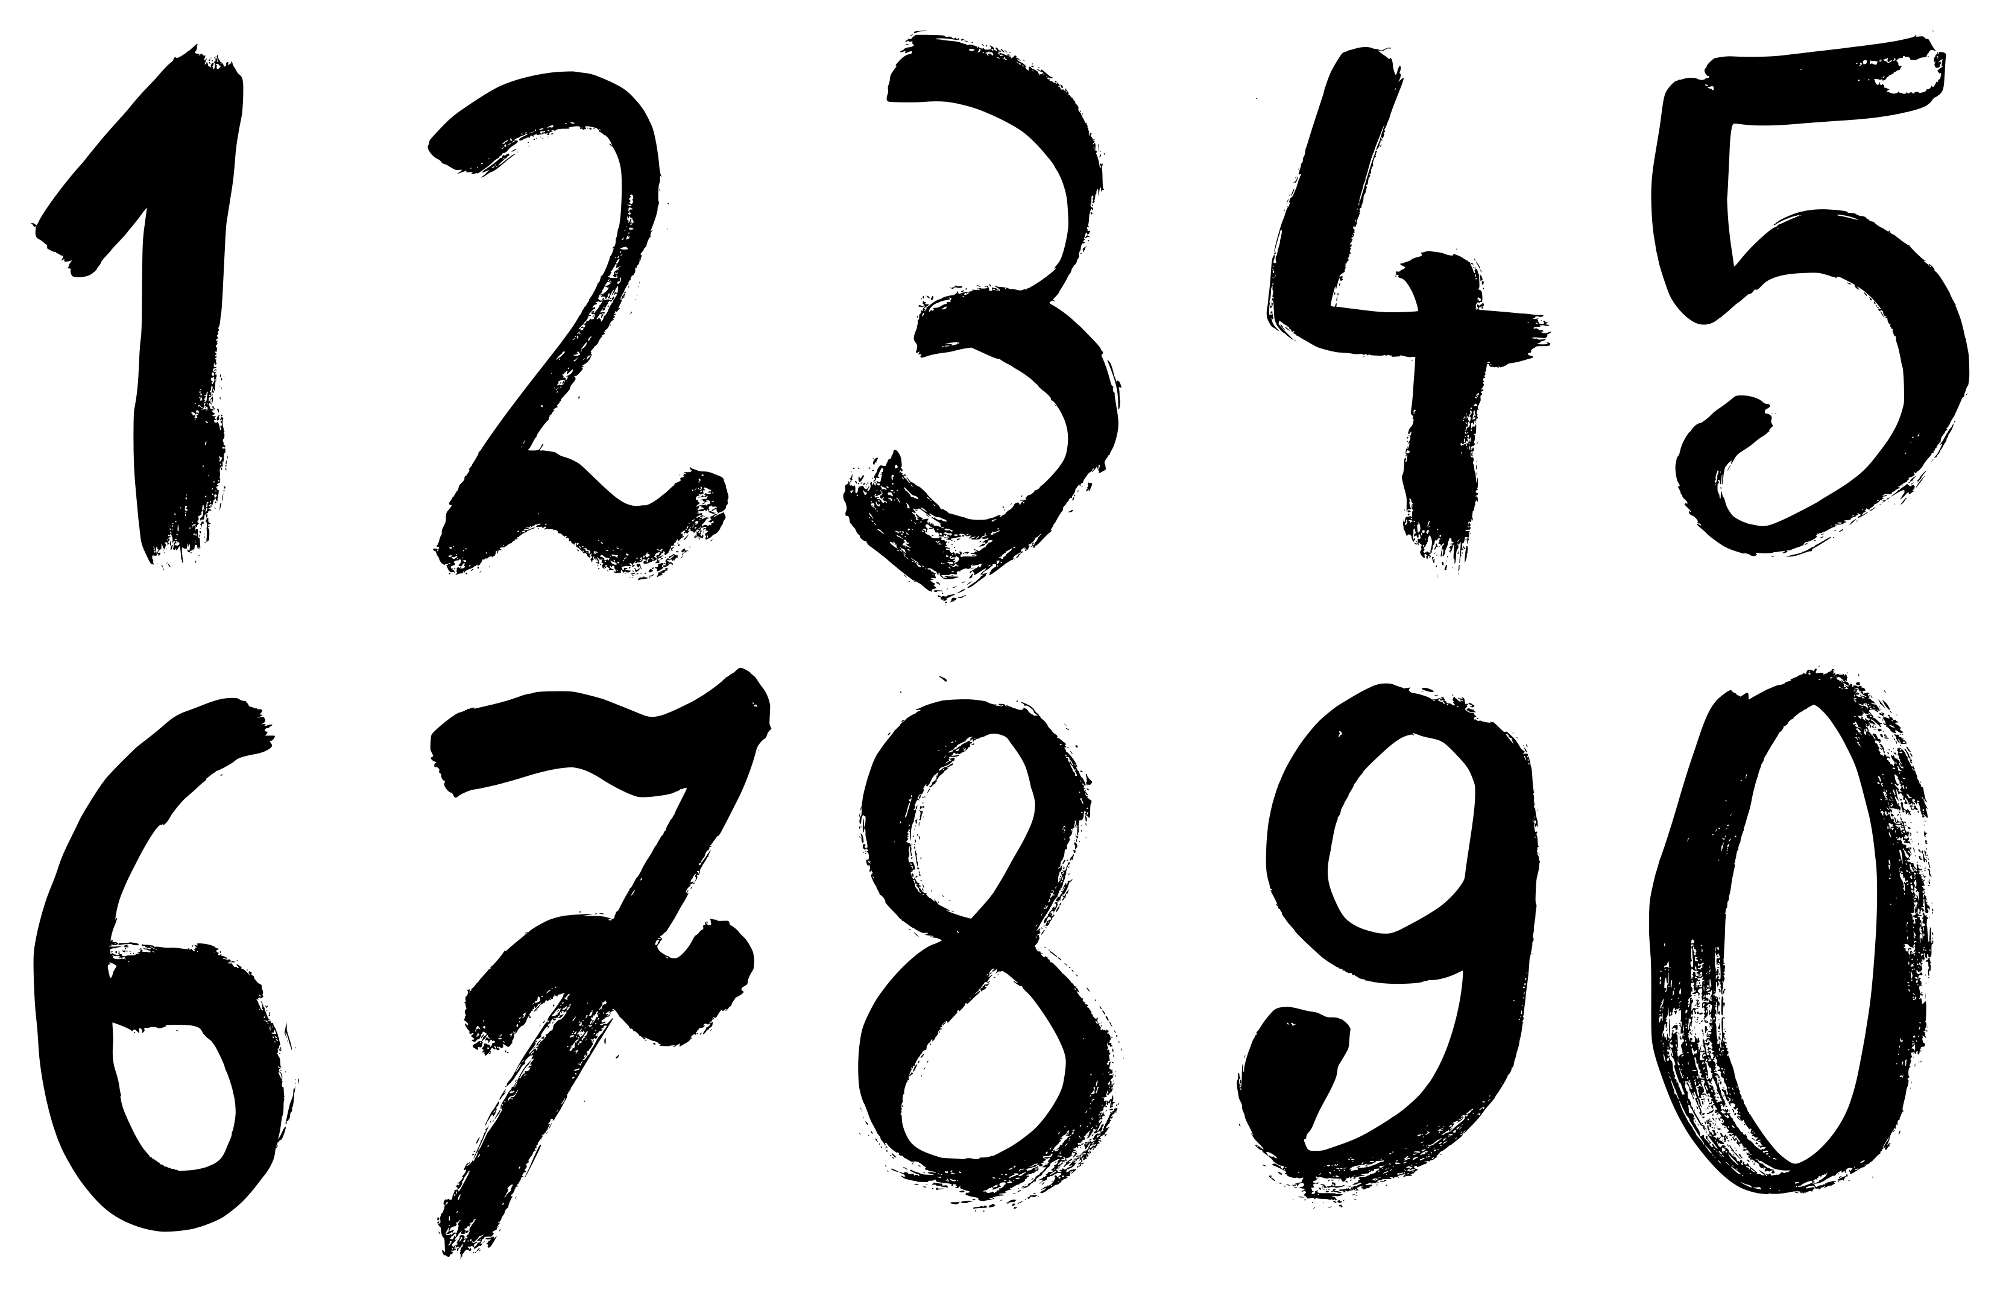 Grunge Numbers Transparent Vol 2